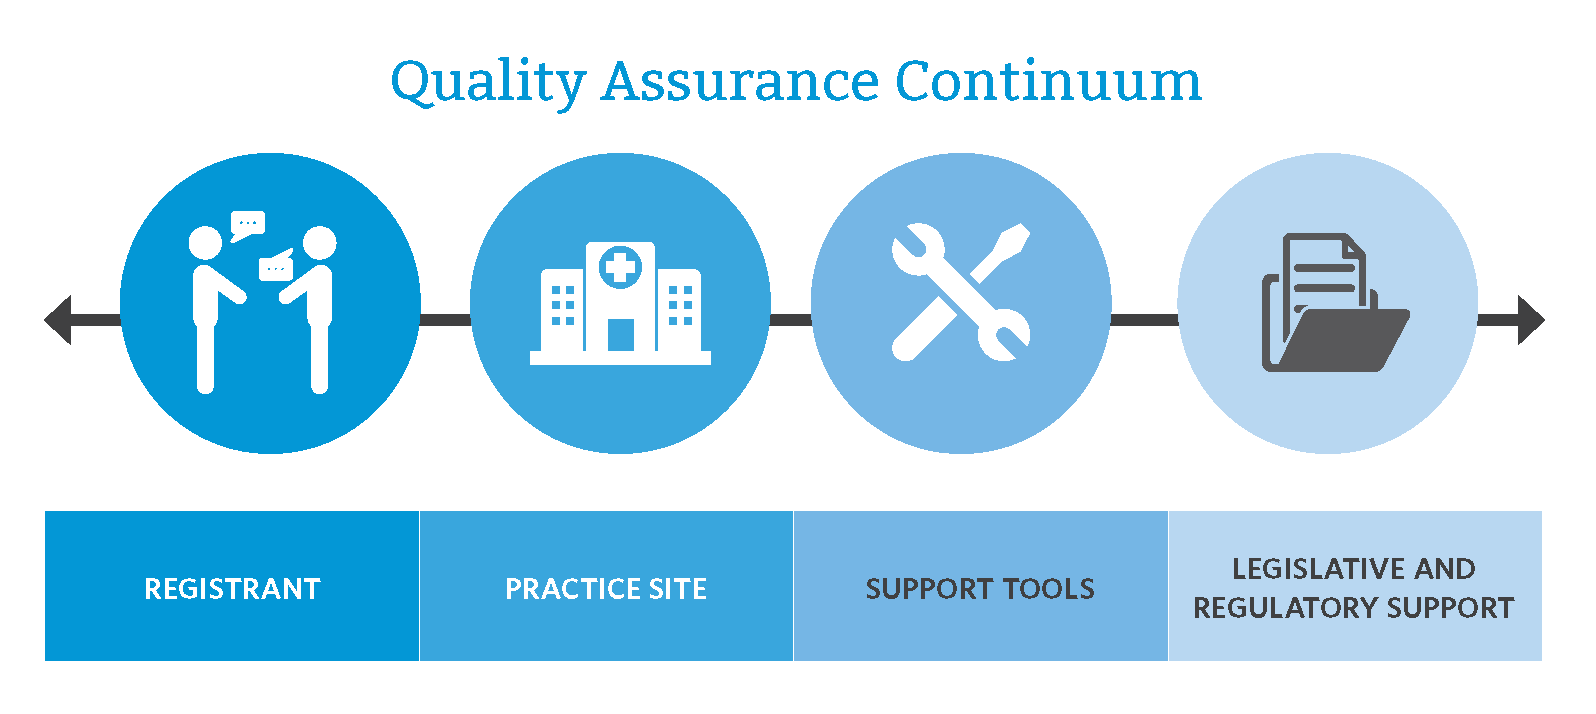 Quality Assurance Program Overview | The Newfoundland ...